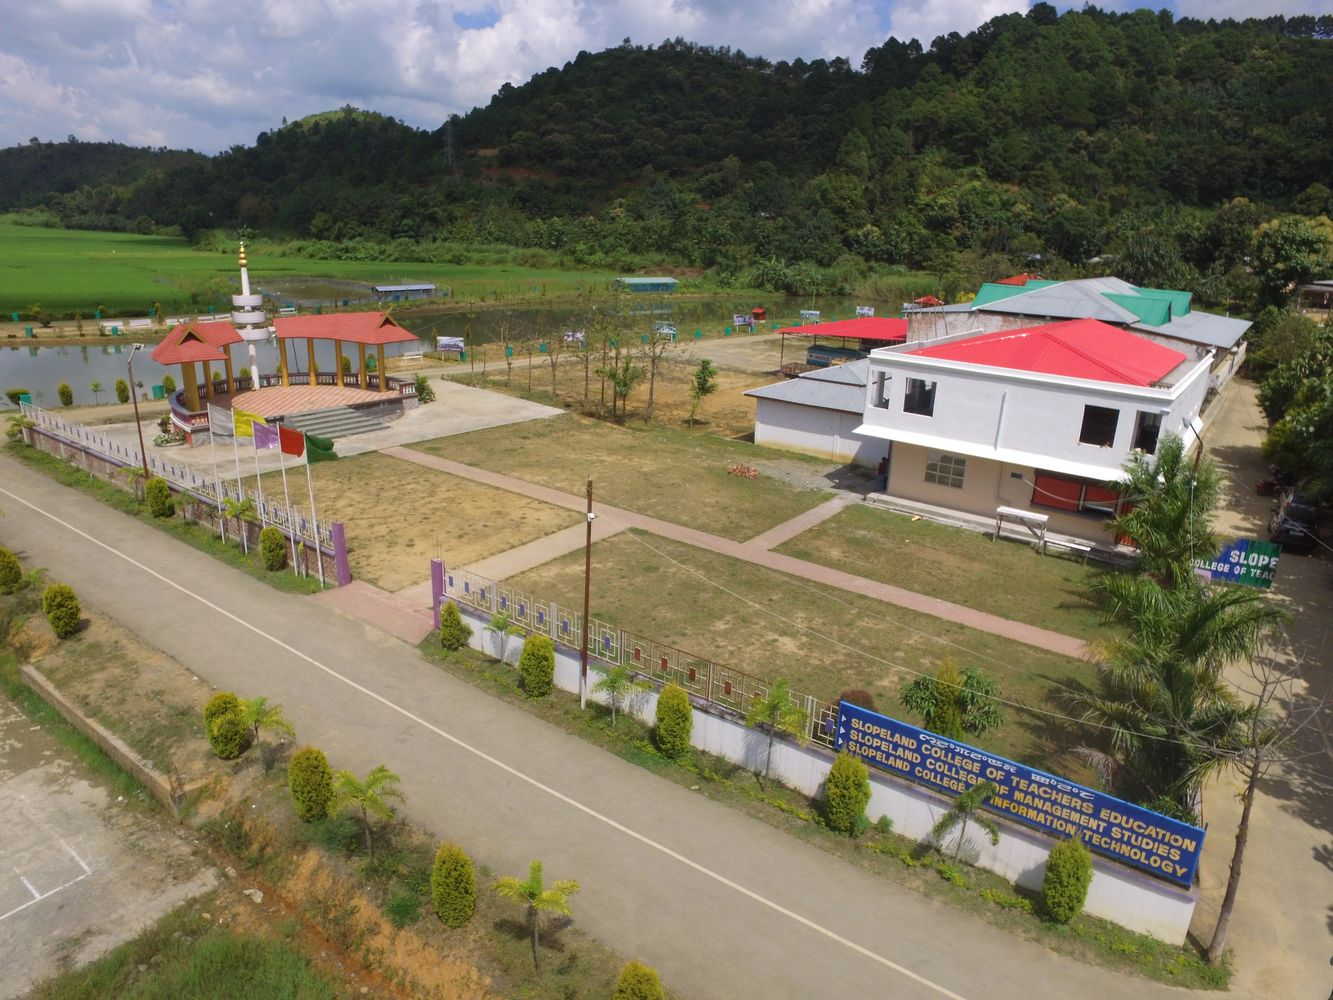 View of College Block.